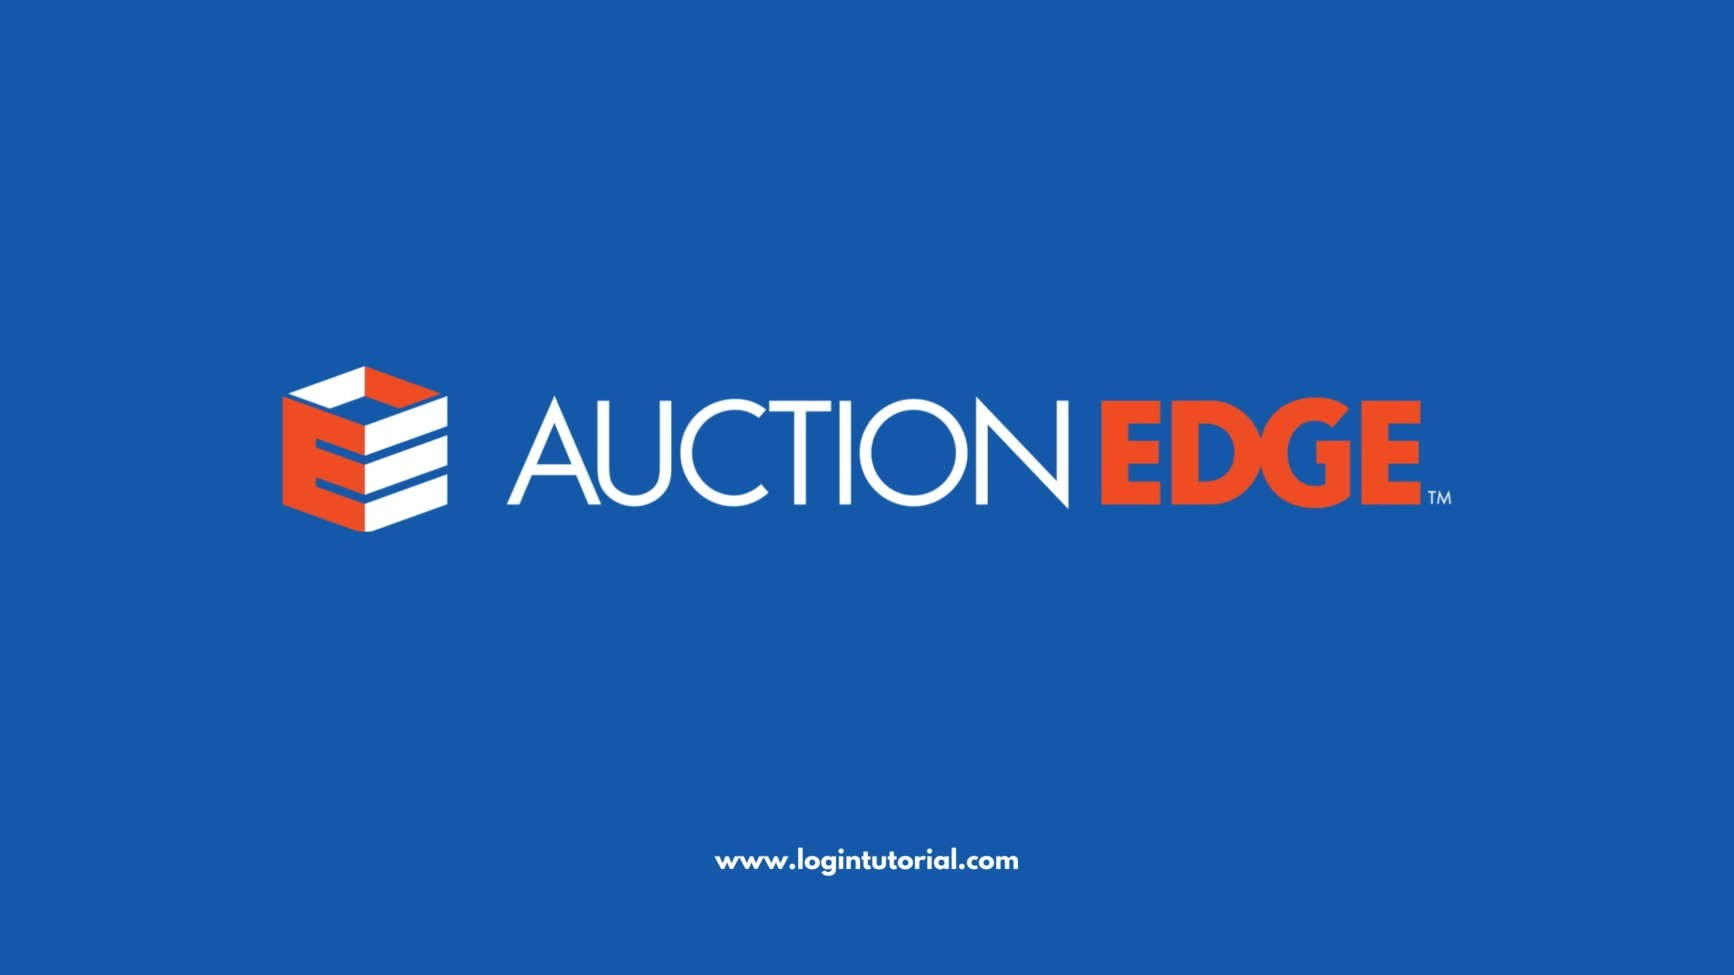 Read more about the article AUCTION EDGE, INC.